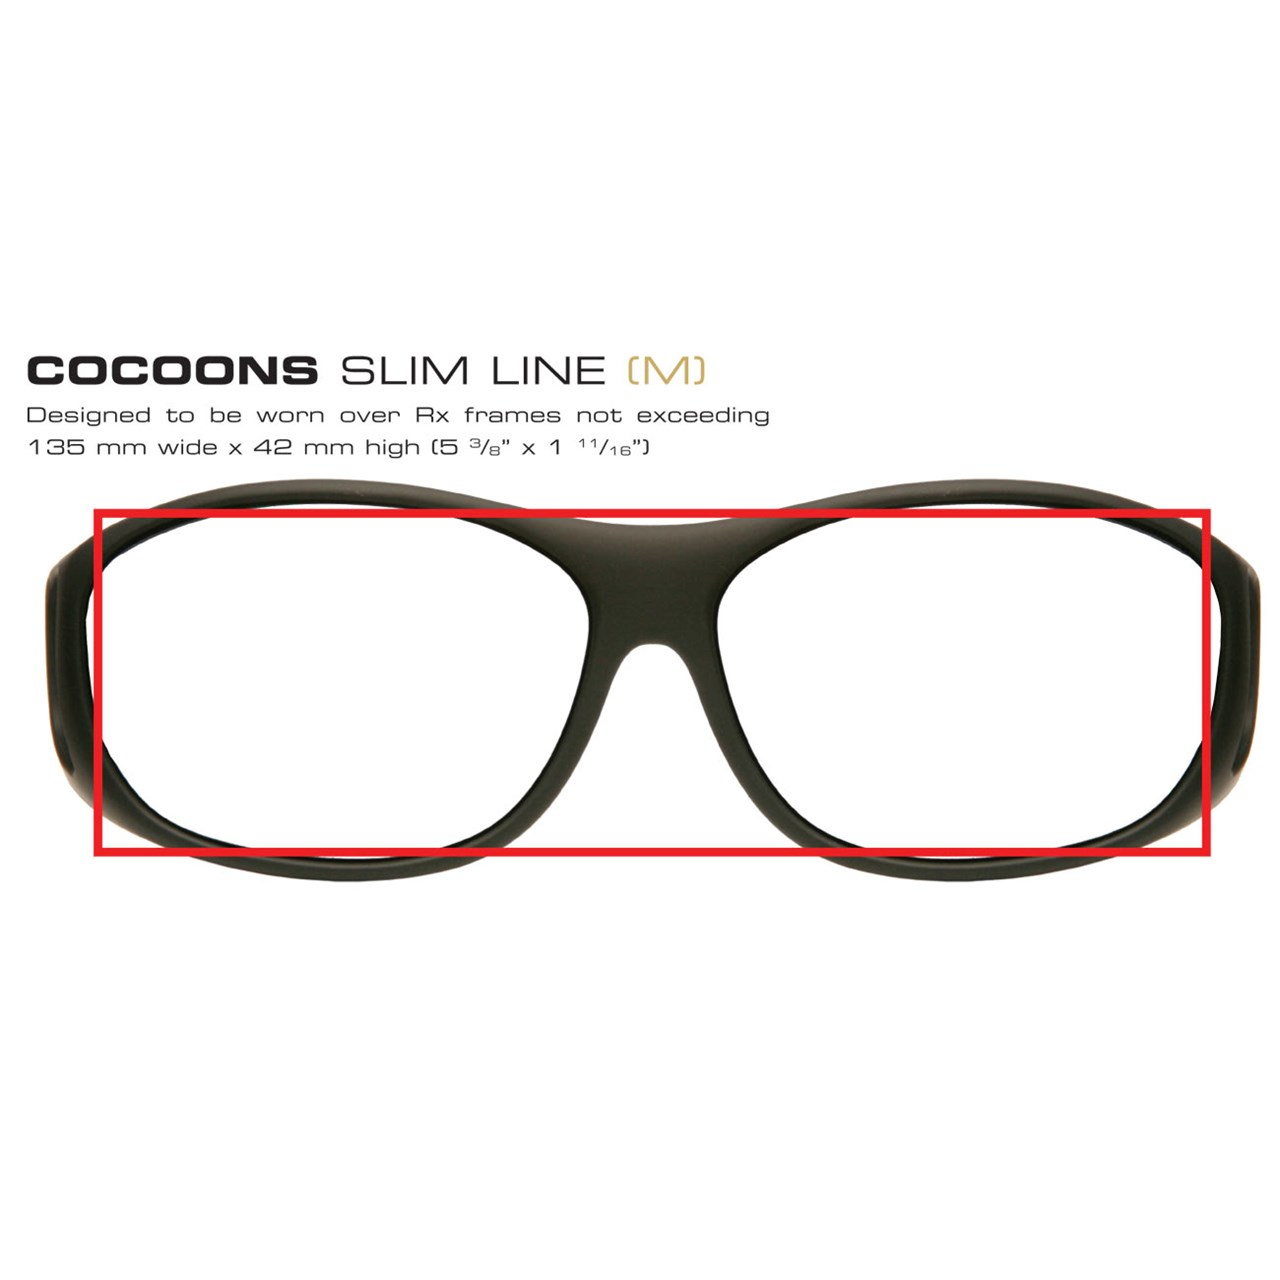 934e8055c0 ... Cocoons Blue Light Computer Eyewear - Slim Line M